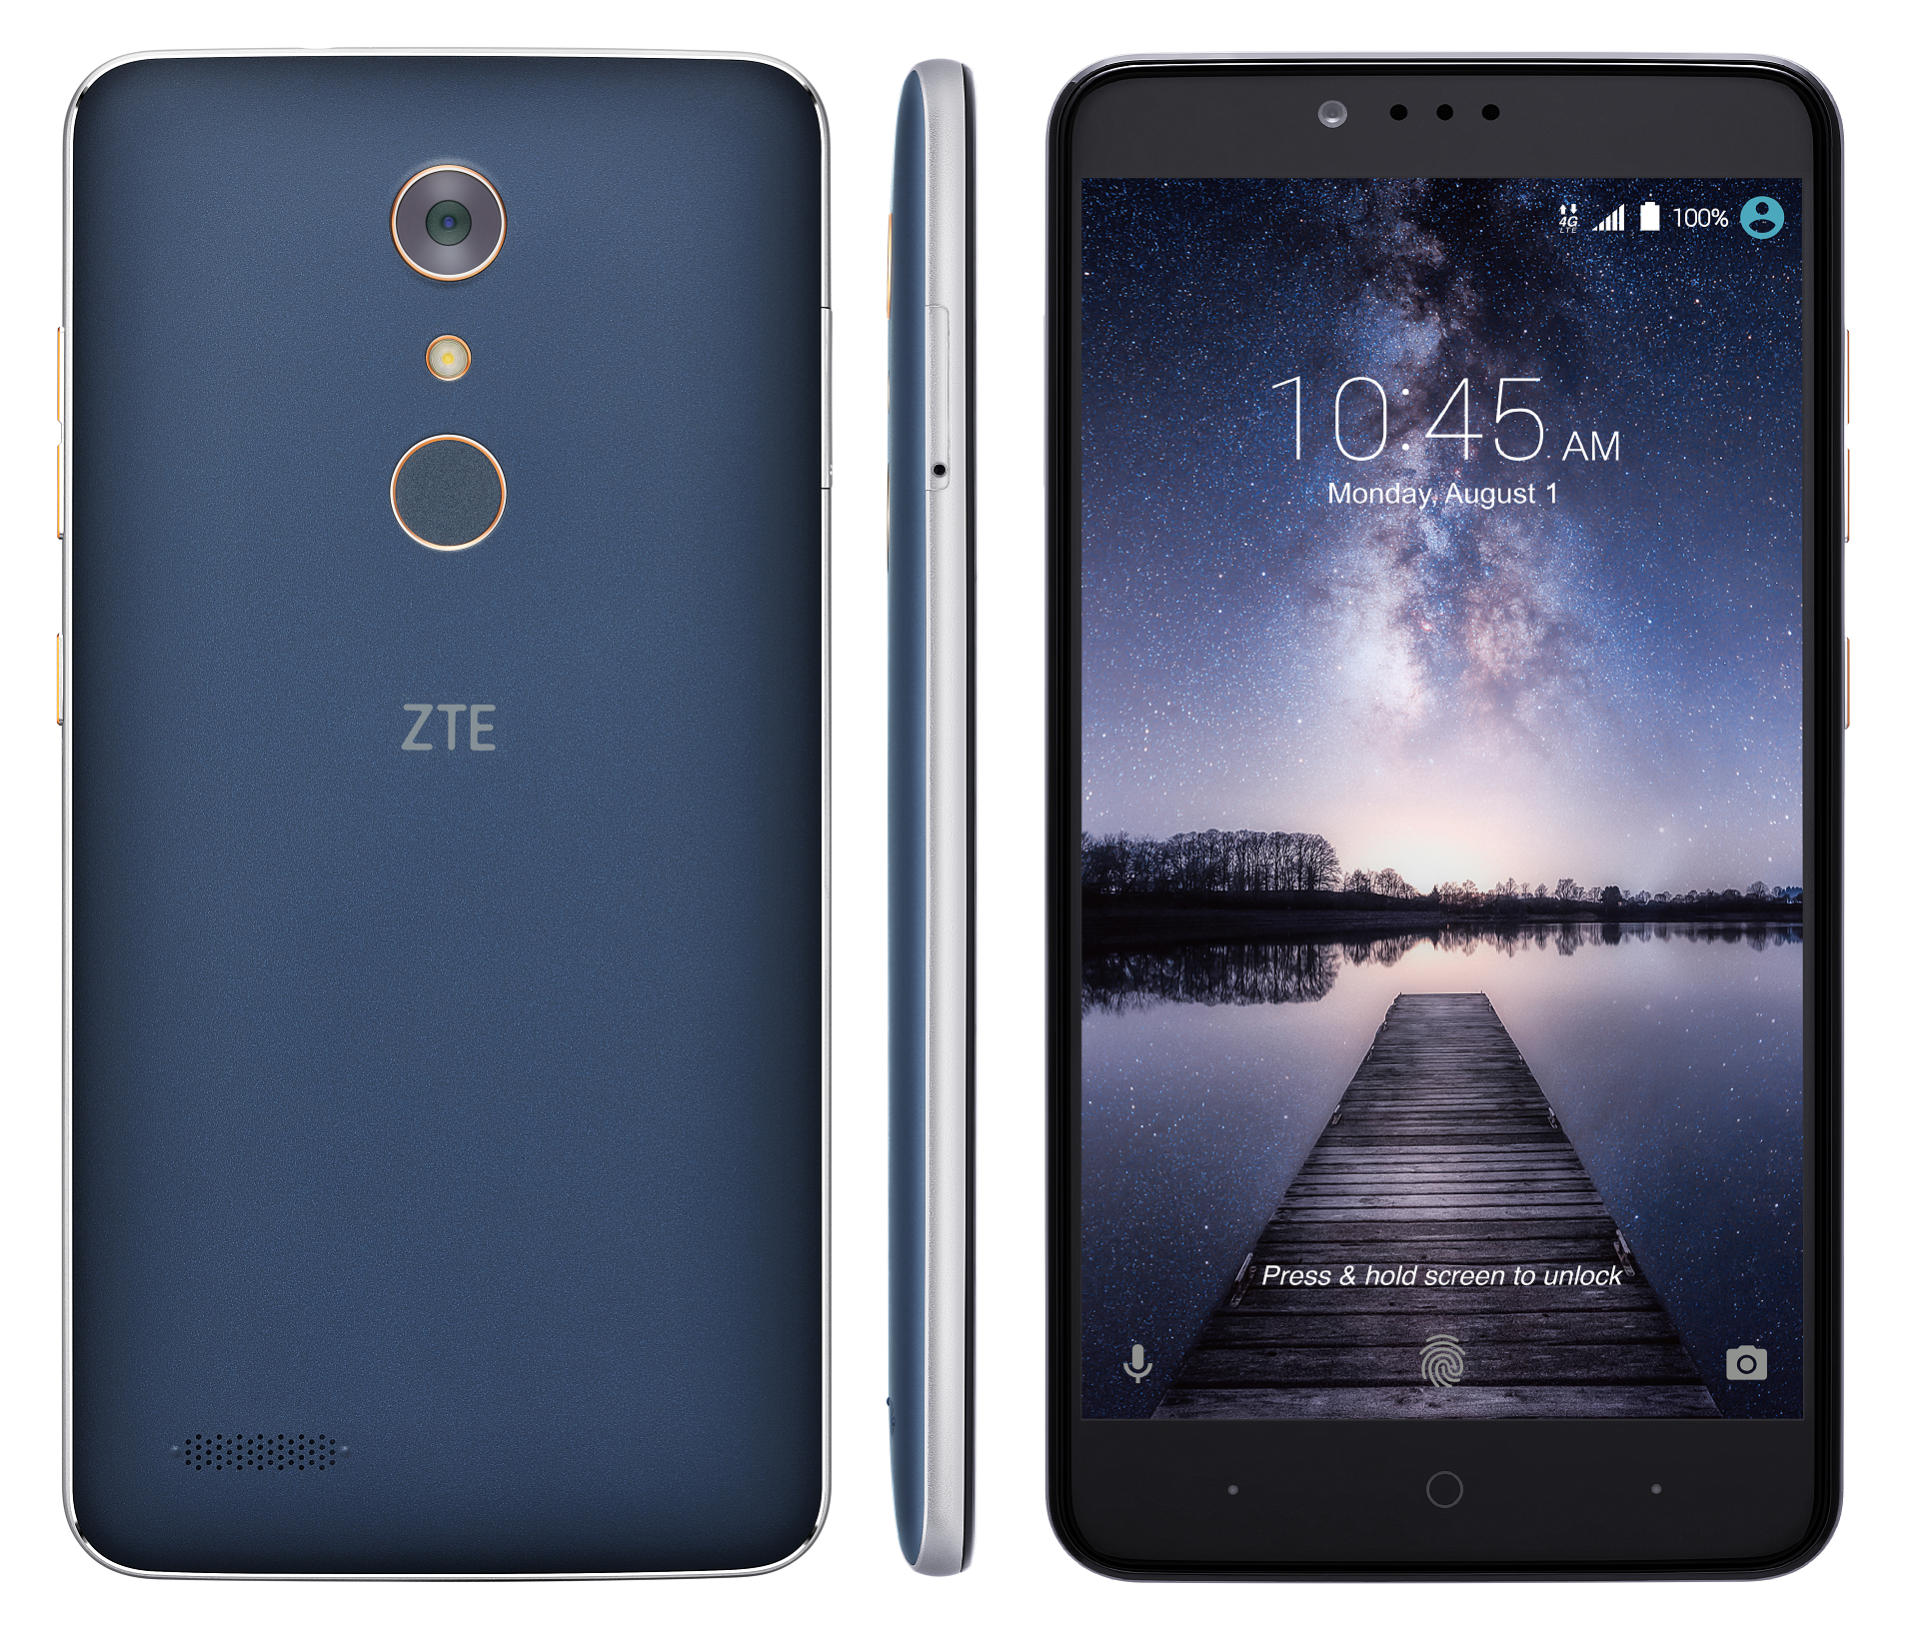 zte zmax pro support paid the